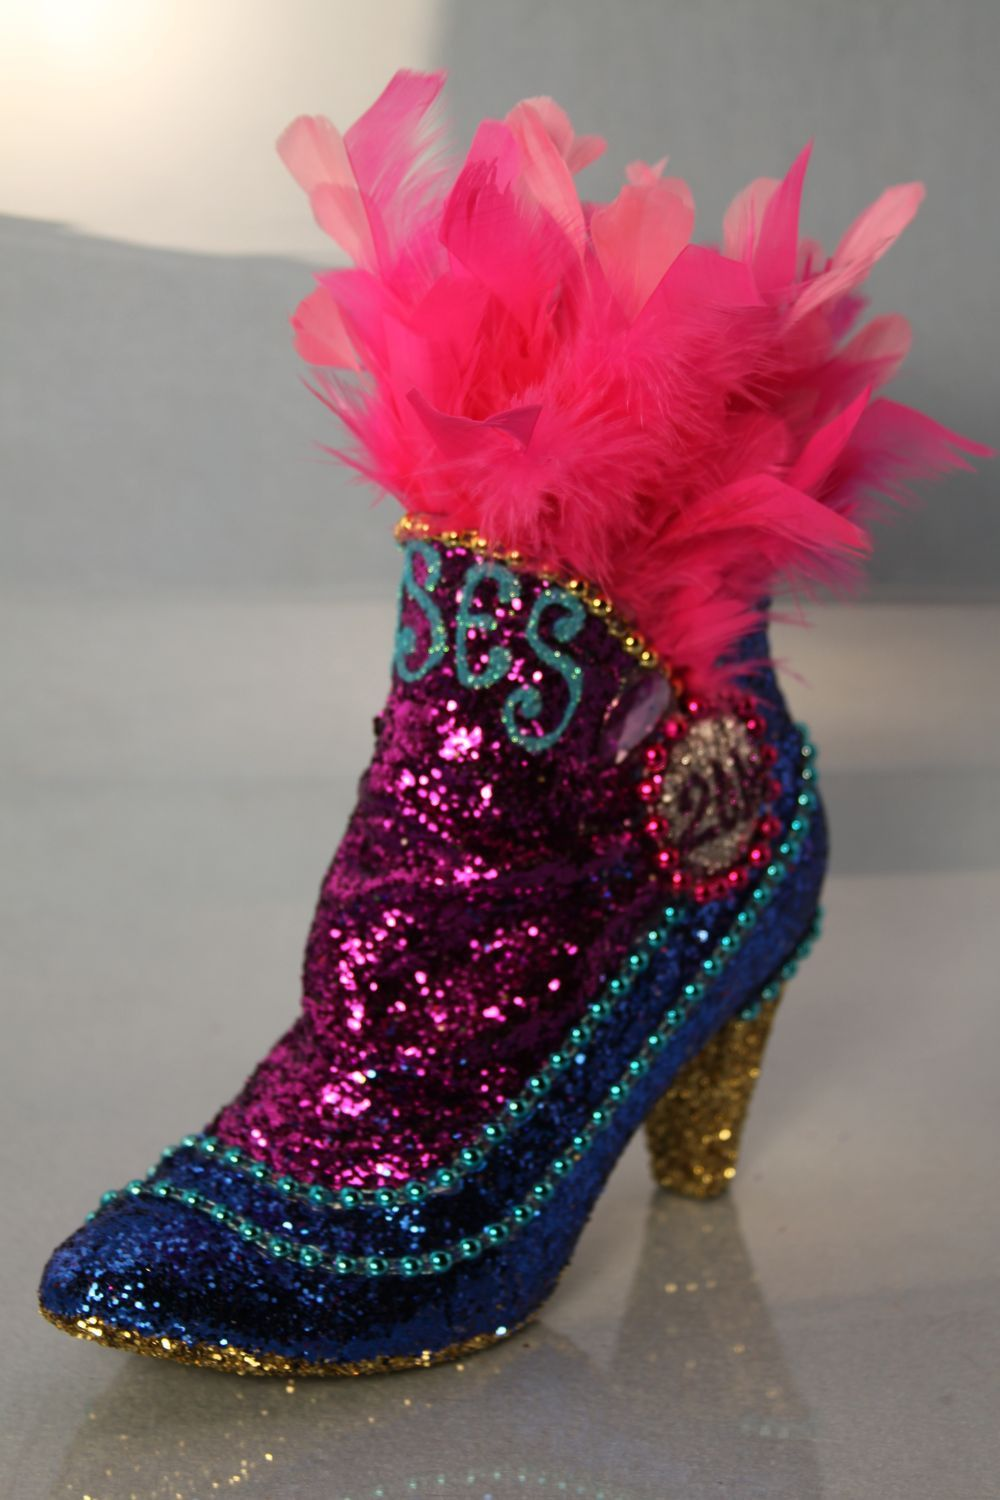 Mardi Gras Shoes Are The New Beads Bedazzled Shoes Decorated Shoes Glitter Shoes